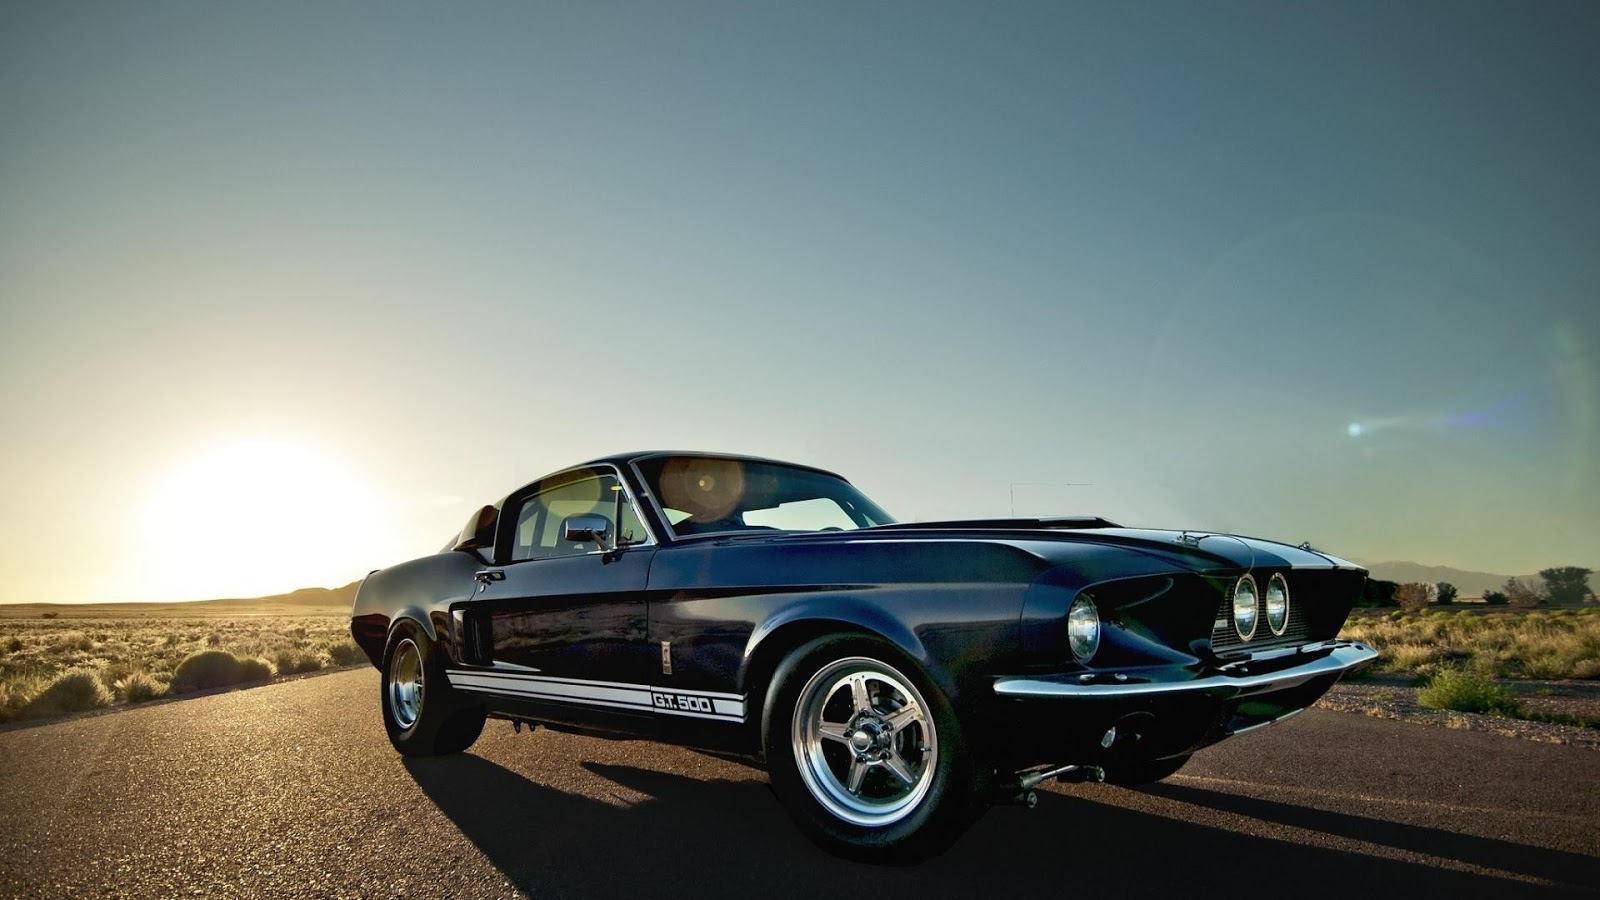 Ford Mustang Classic